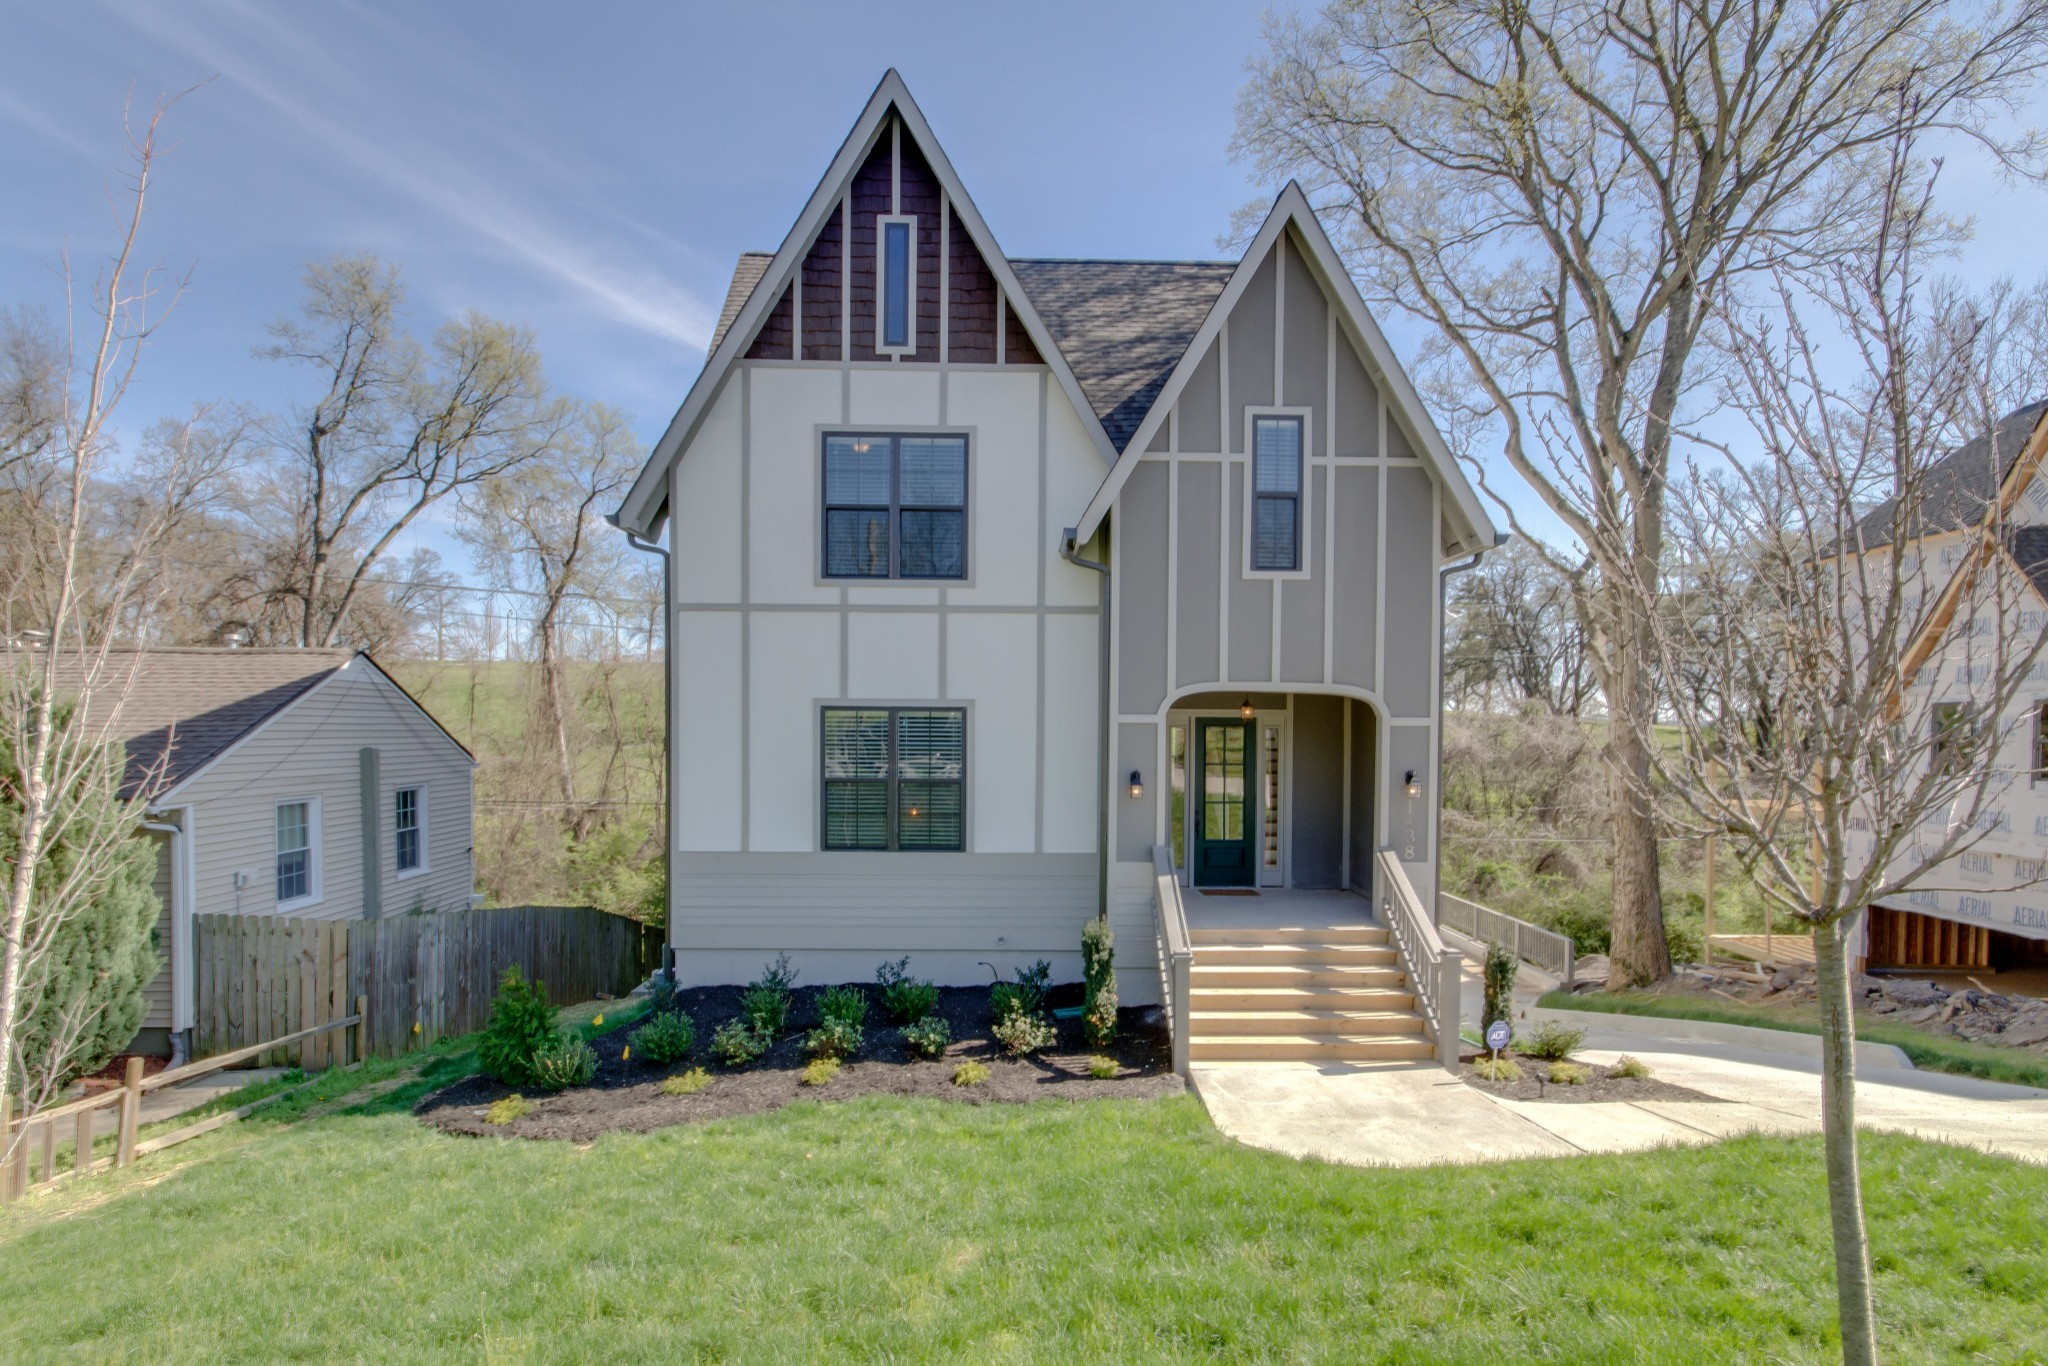 1438 Electric Ave, Nashville, TN 37206 - Nashville, TN real estate listing